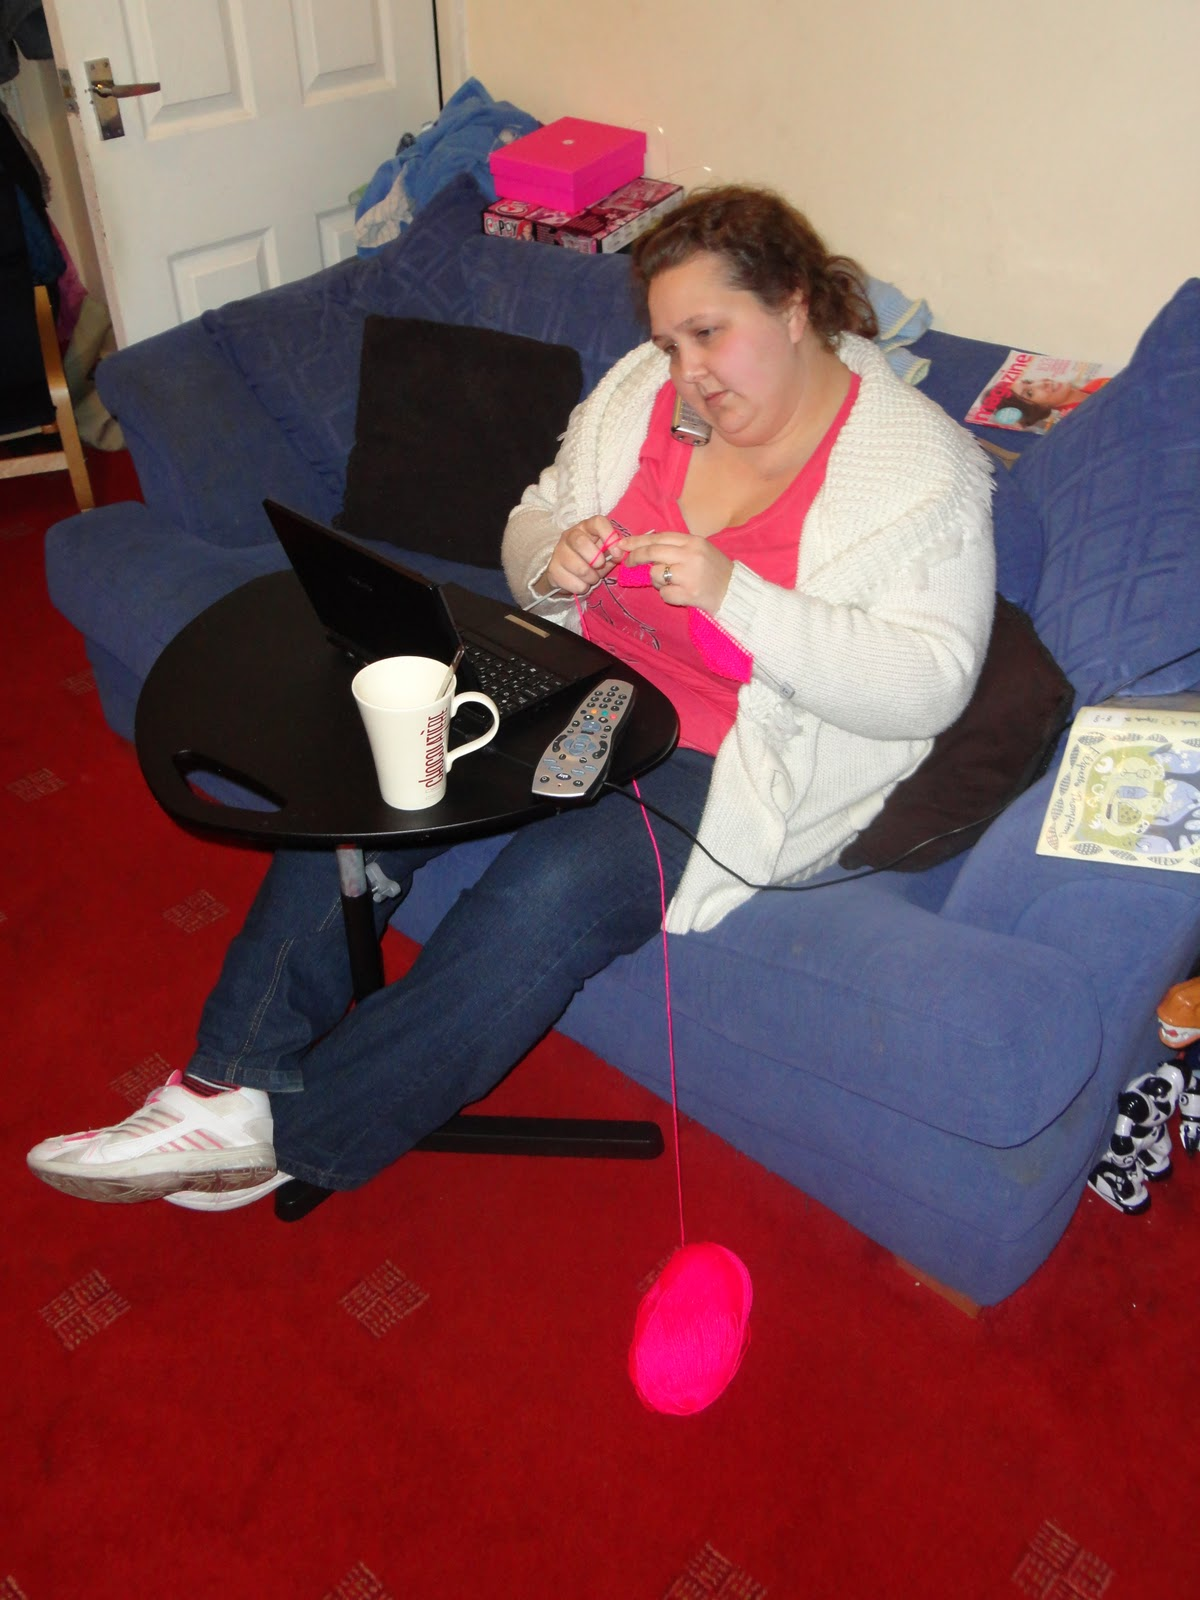 PippaD back in 2012, knitting, on the phone, drinking, on the laptop and reading...